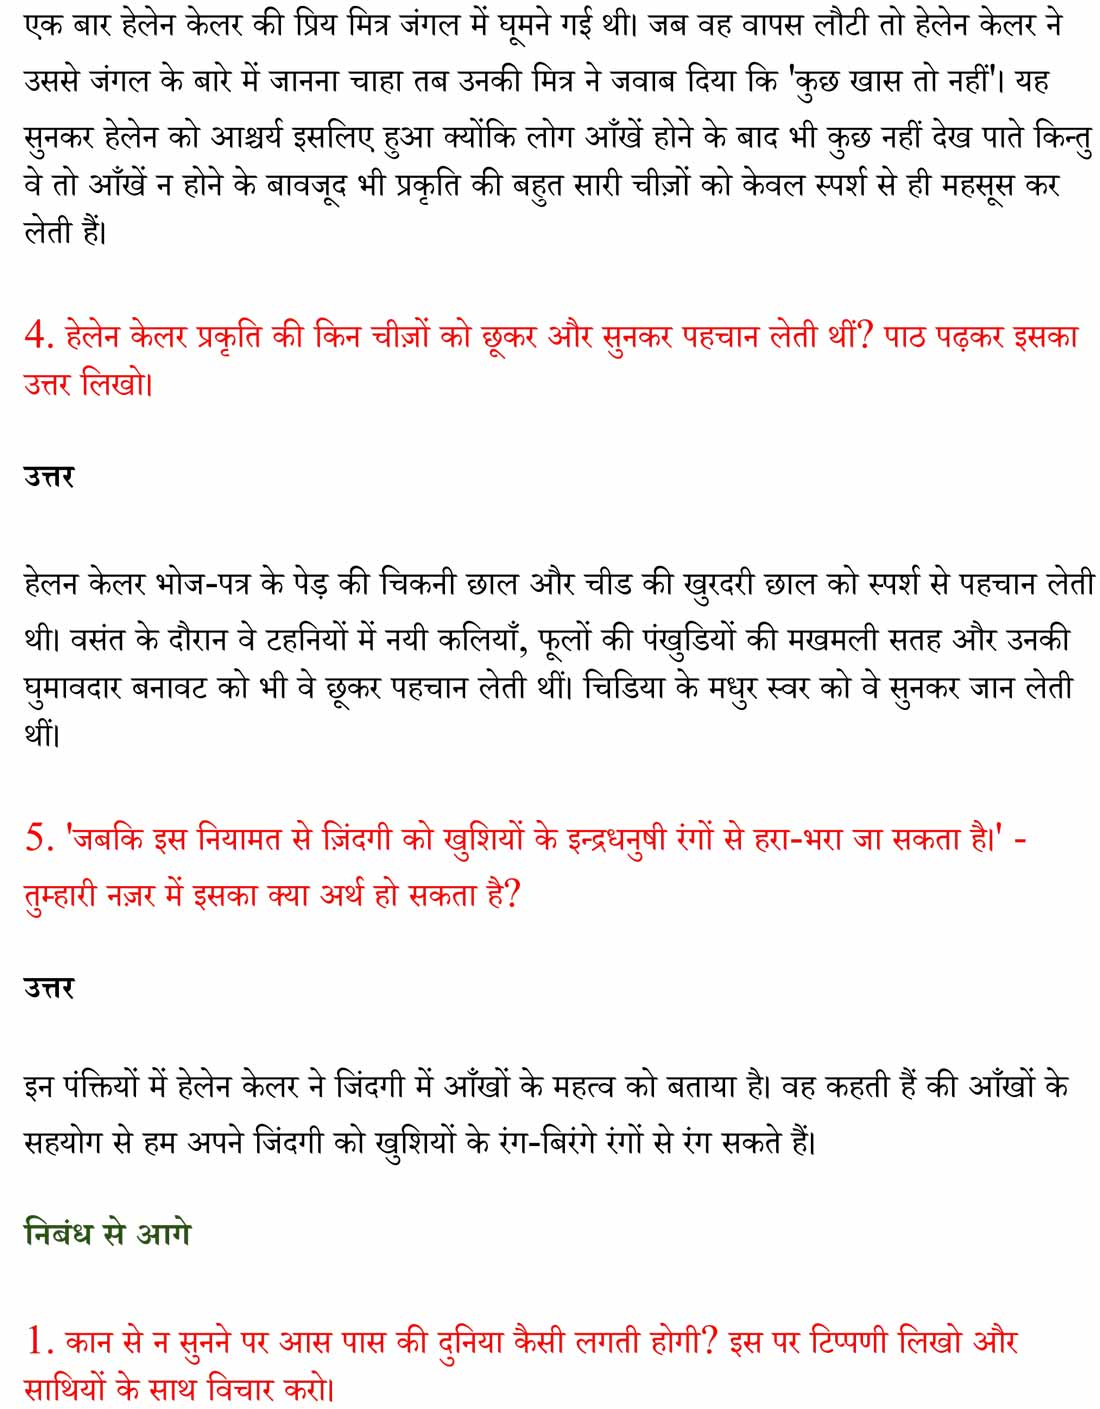 NCERT Solutions For Class 6 Hindi Vasant - Chapter 11 जो